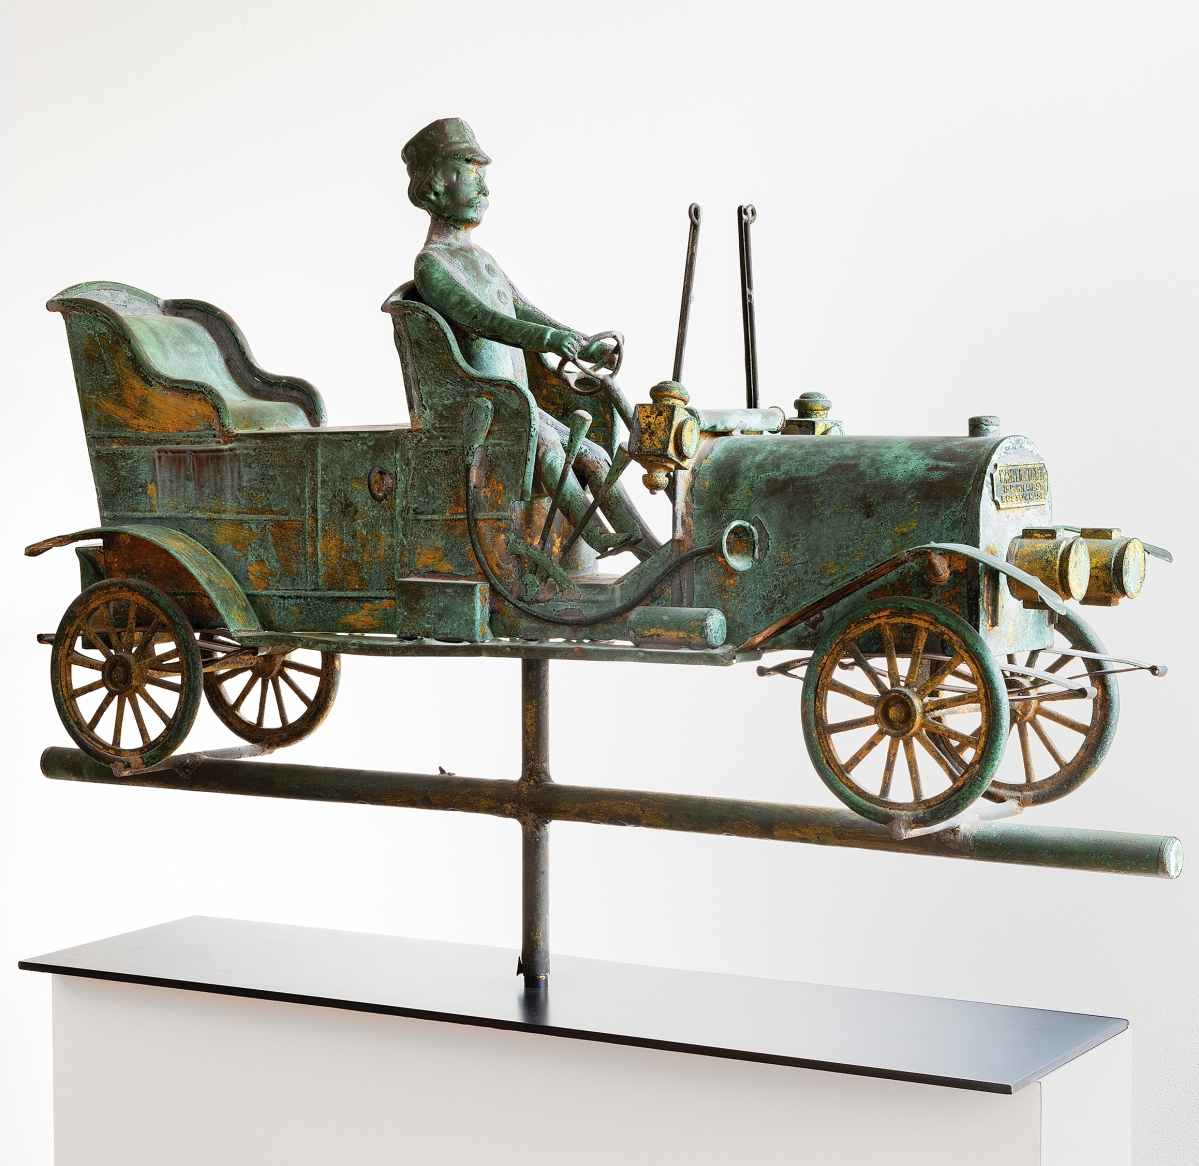 Touring car and driver, W.A. Snow Iron Works, Boston, Mass., circa 1910. Molded copper with traces of gilt, height from bottom of wheels, 18 inches, length 33 inches. Collection of Susan and Jerry Lauren, photo Adam Reich.